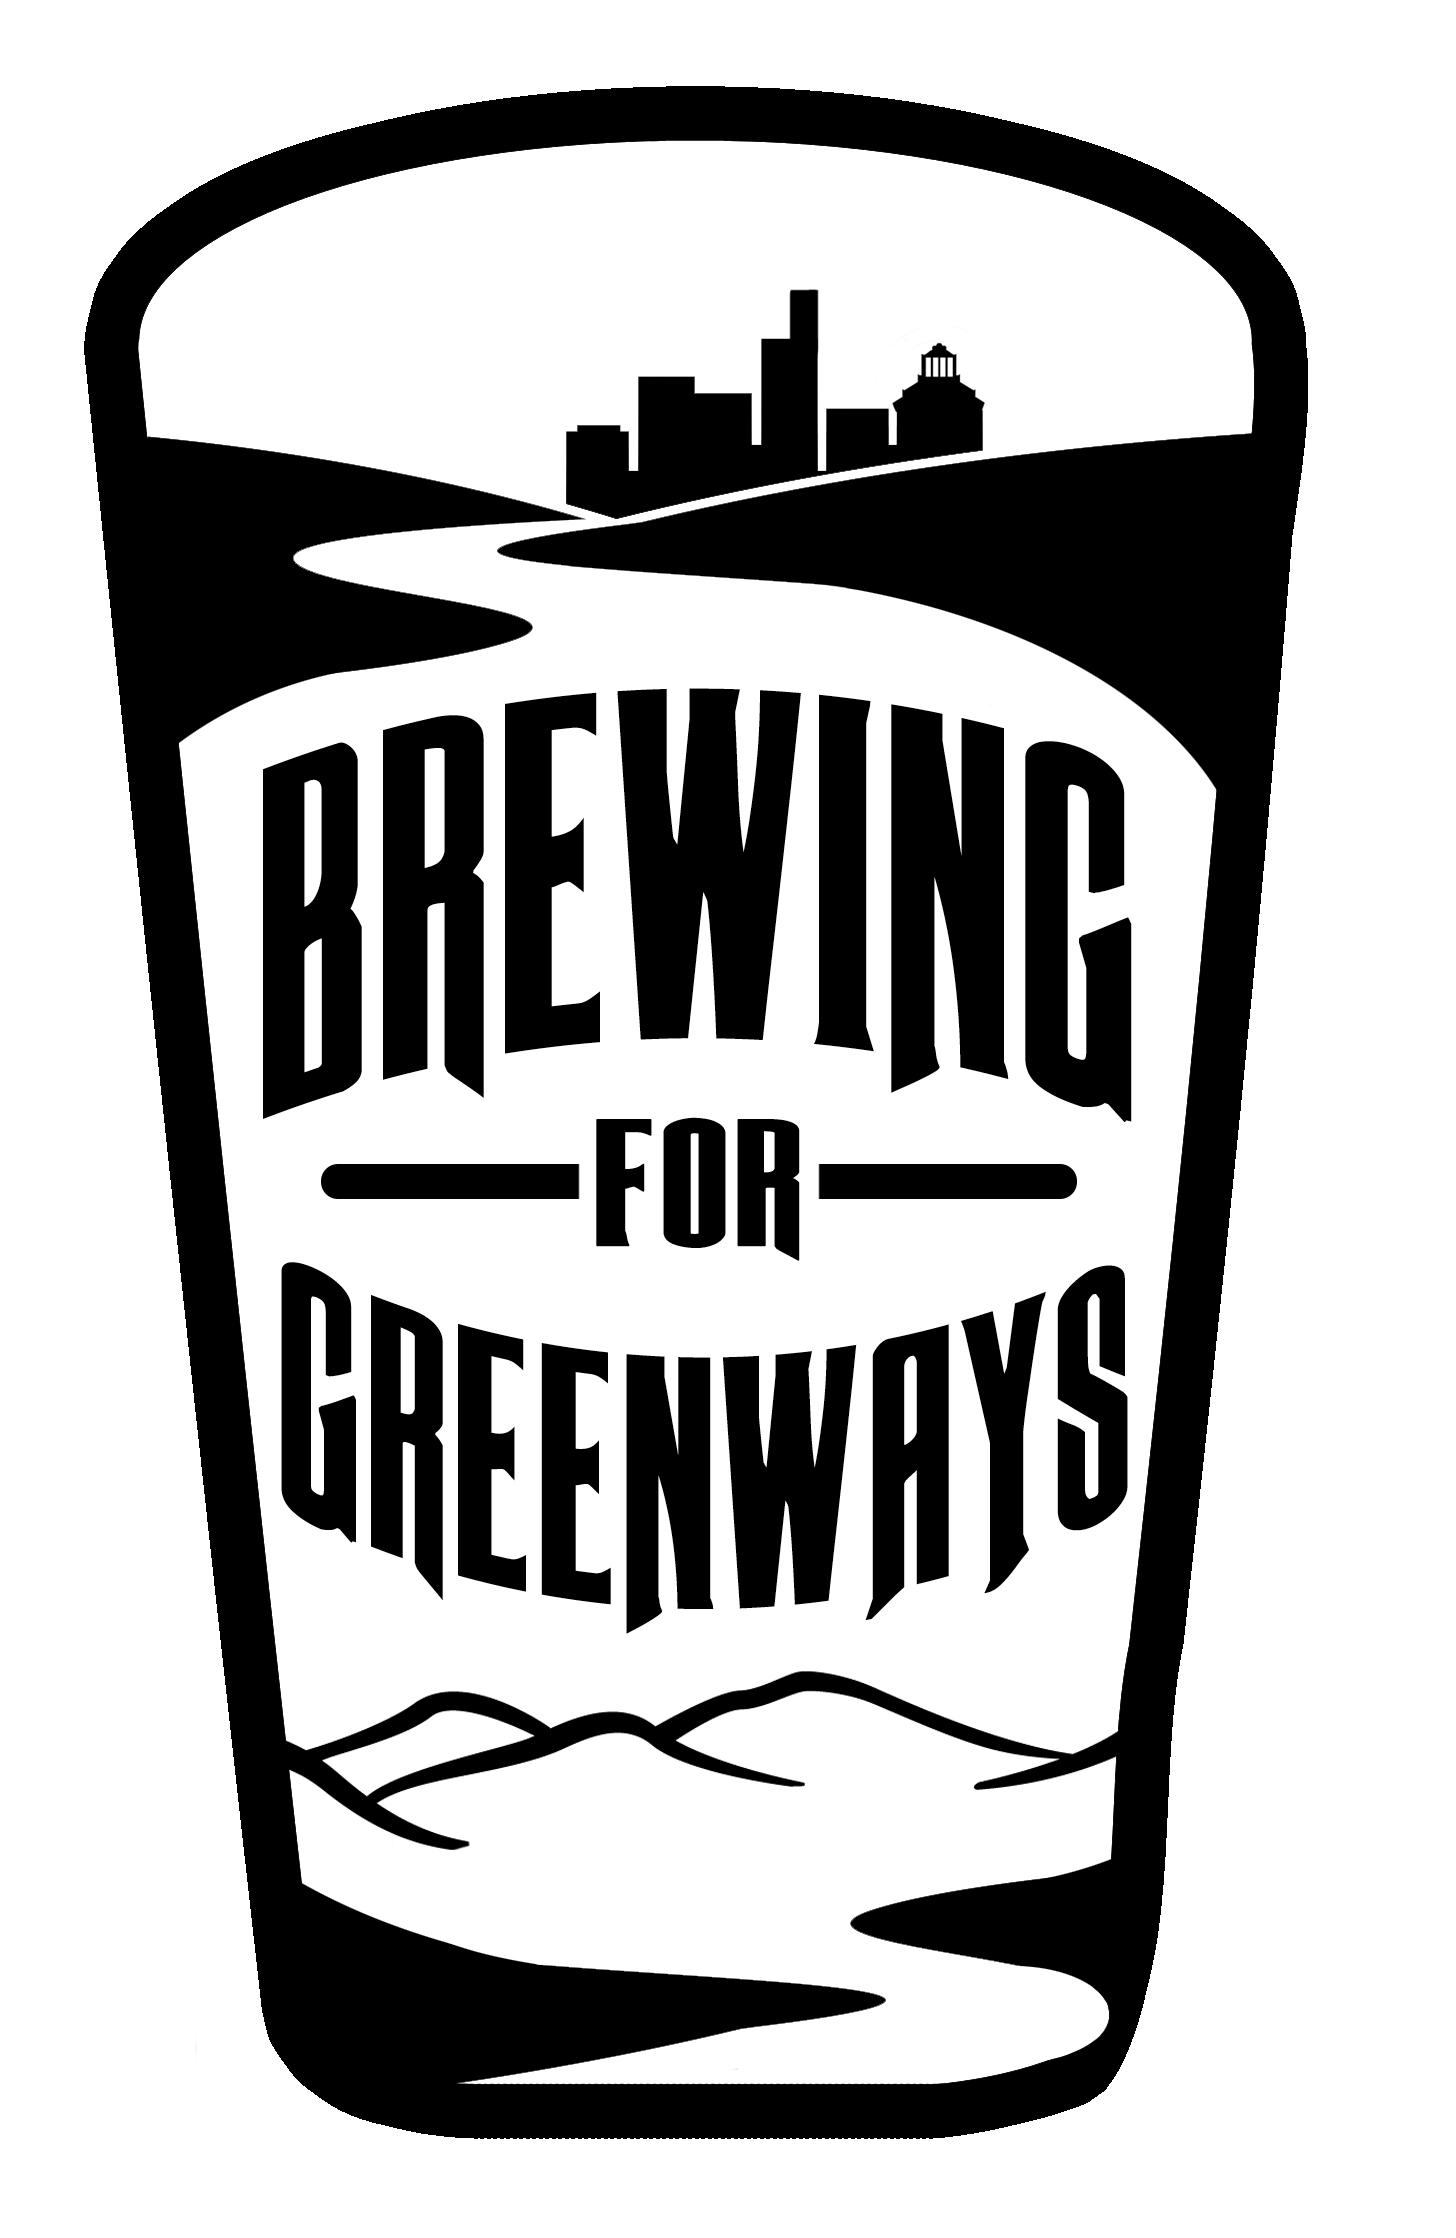 Brewing for Greenways.